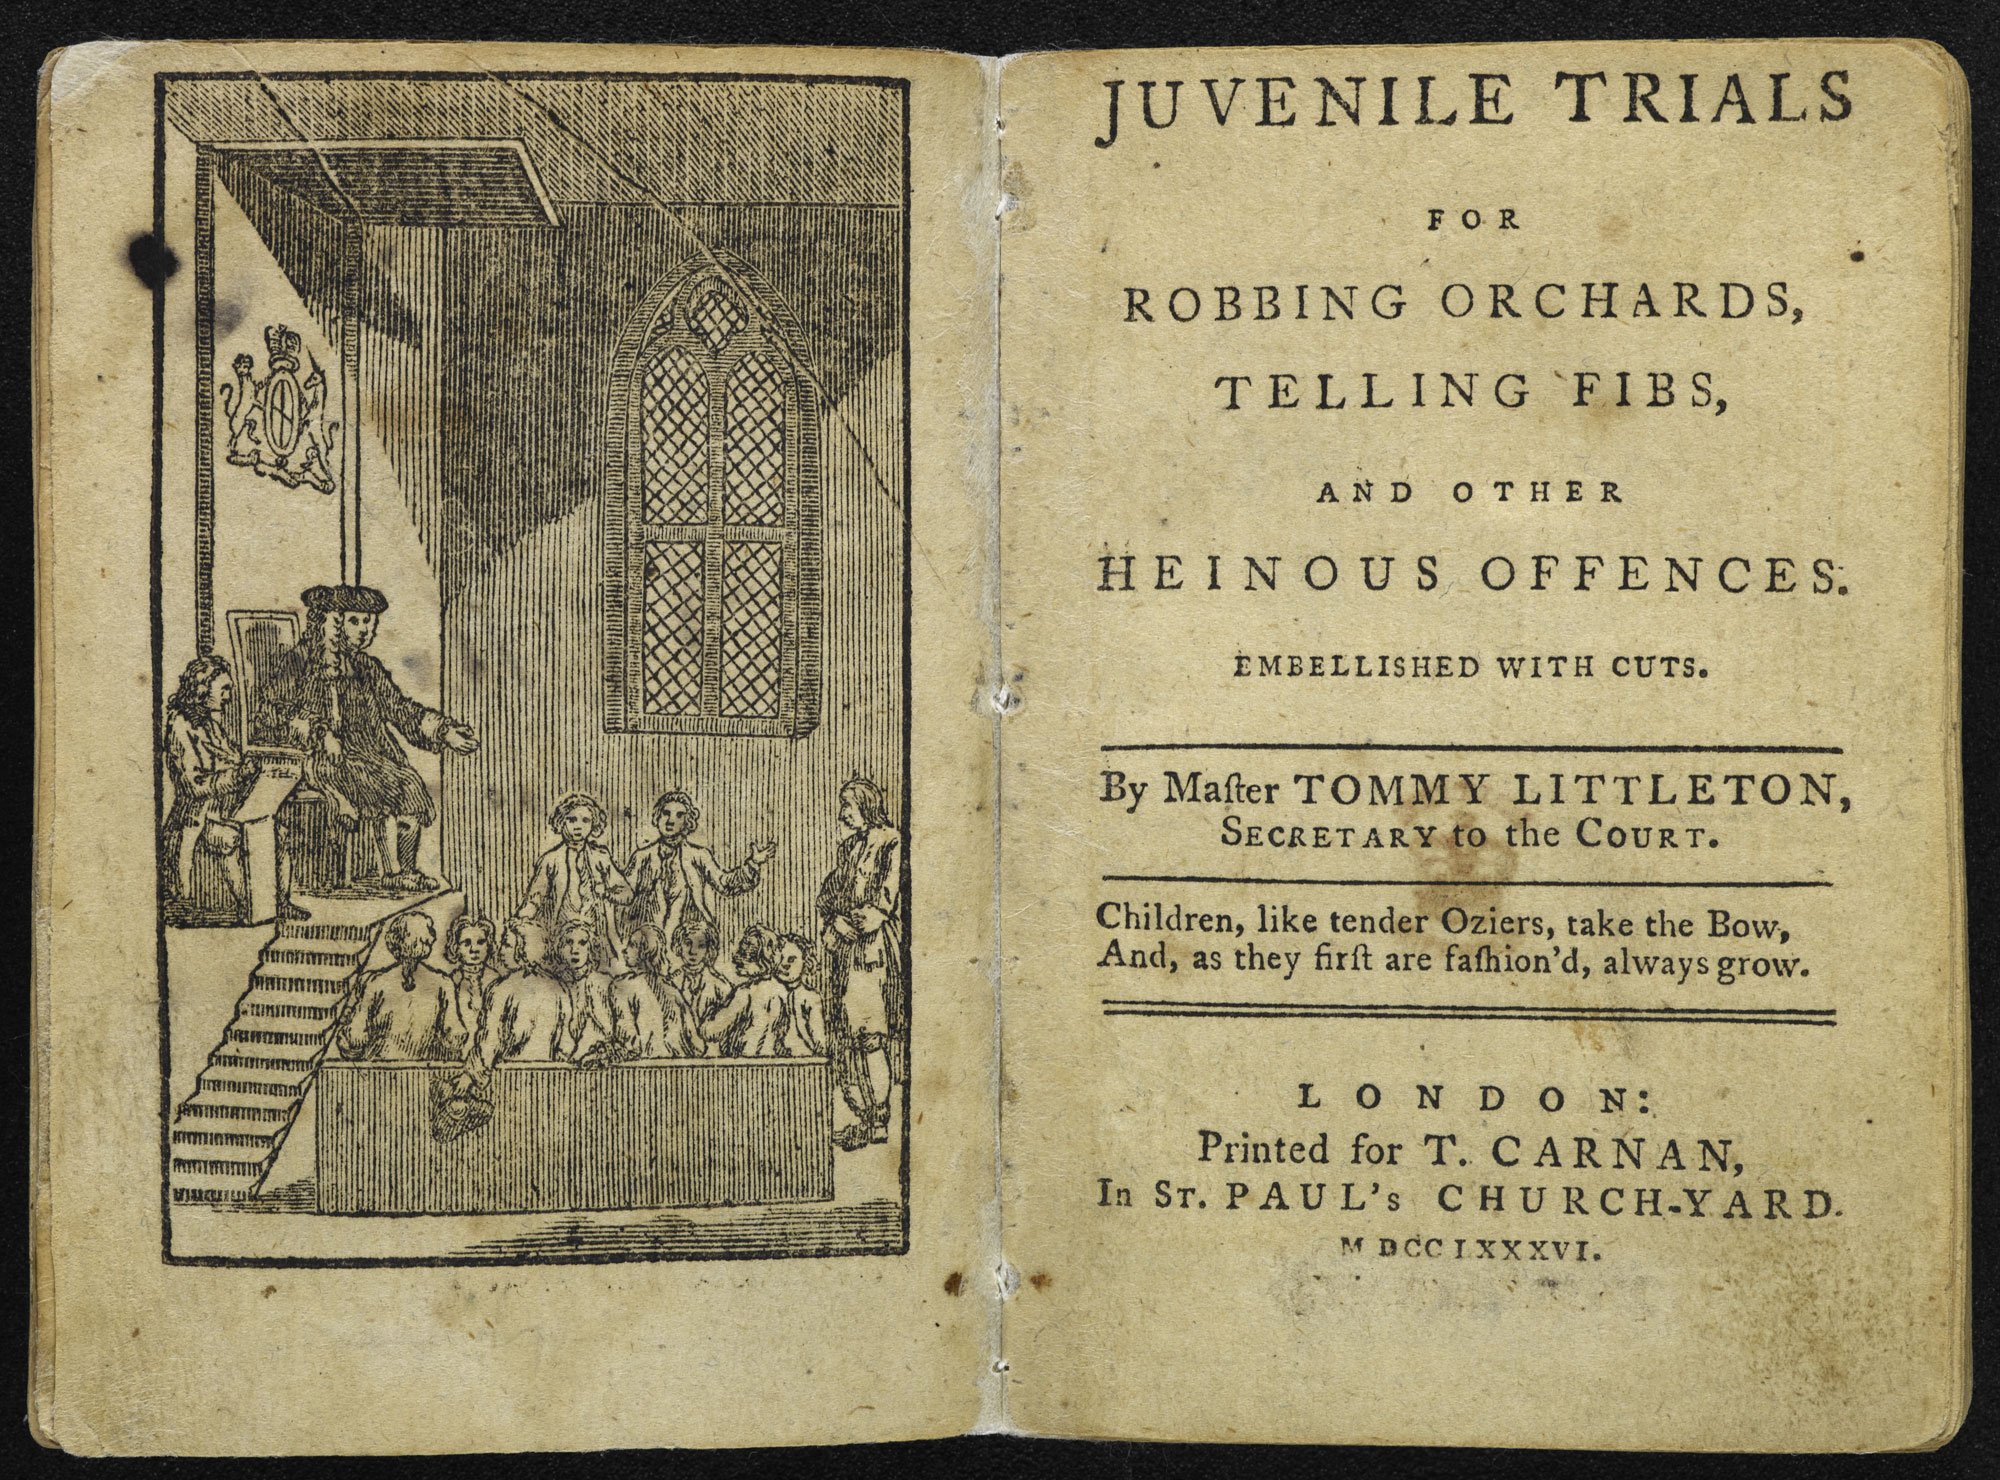 Juvenile Trials [page: frontispiece and title page]